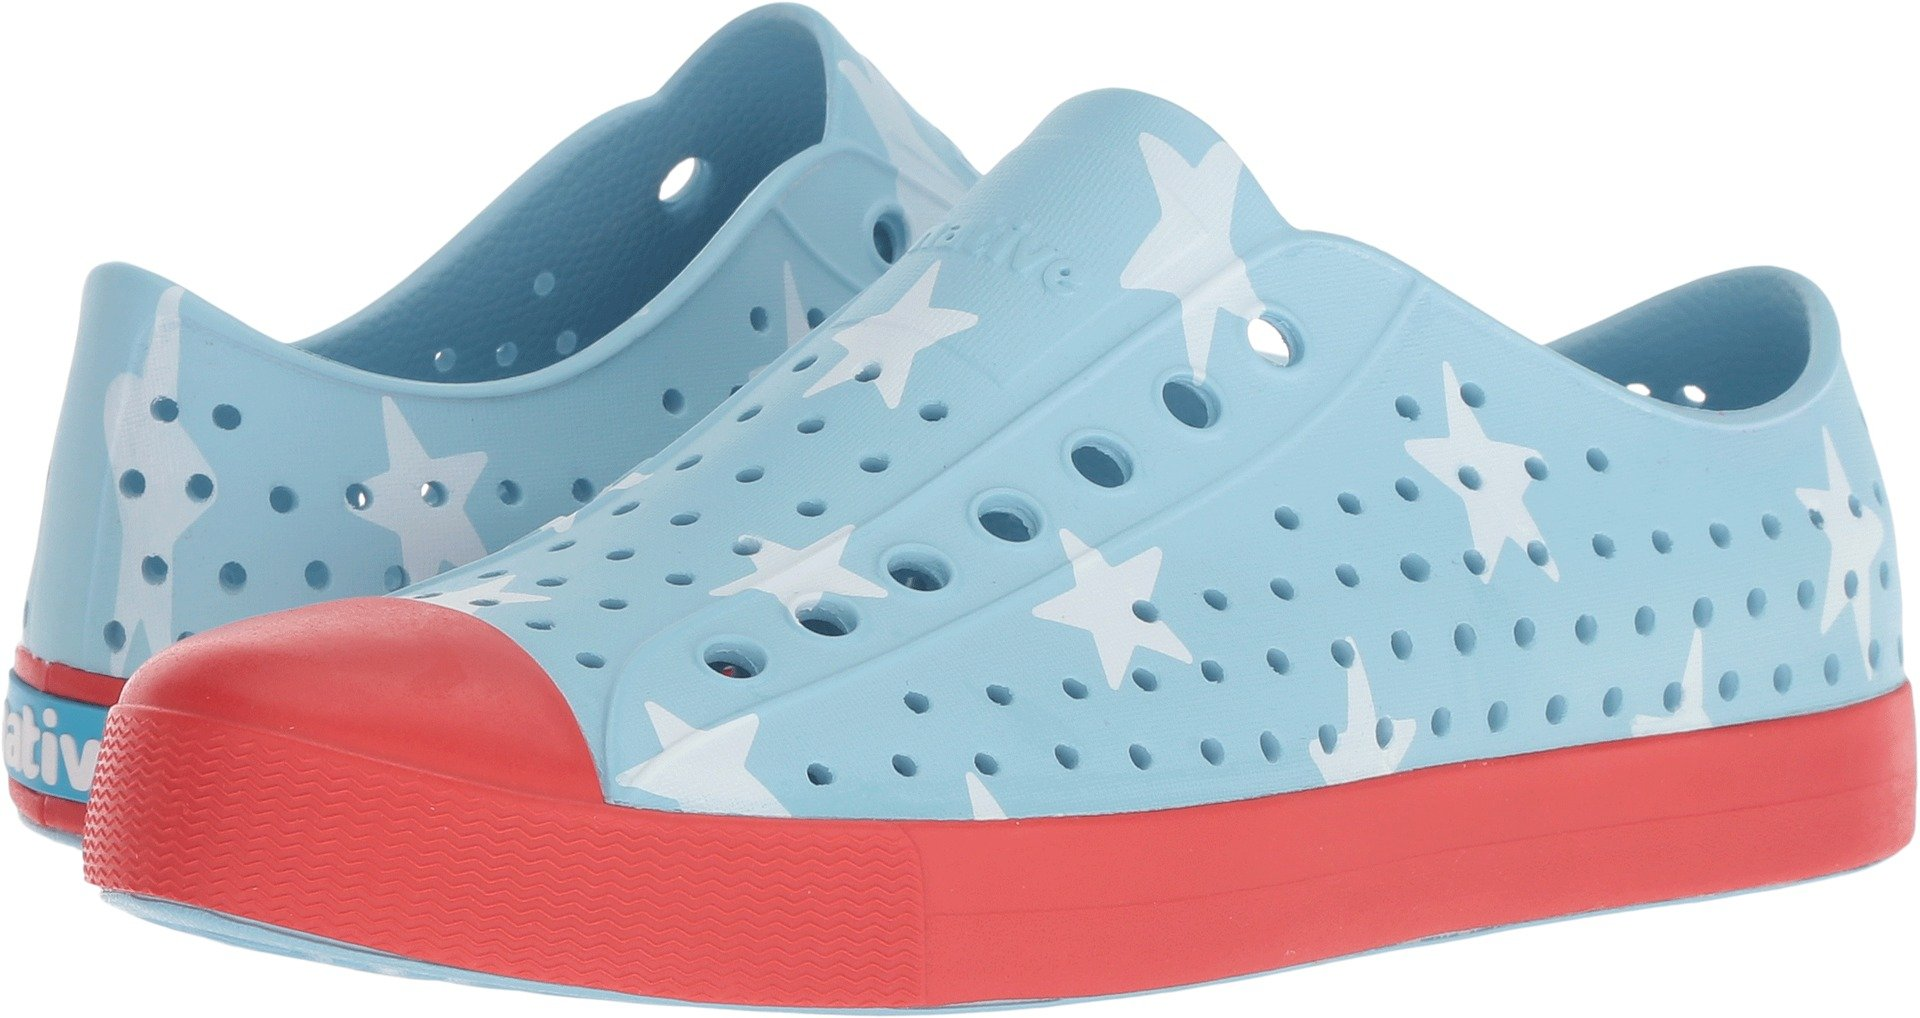 Native Shoes Jefferson Water Shoe, Sky Blue/Torch red/Big Star, 9 Men's M US